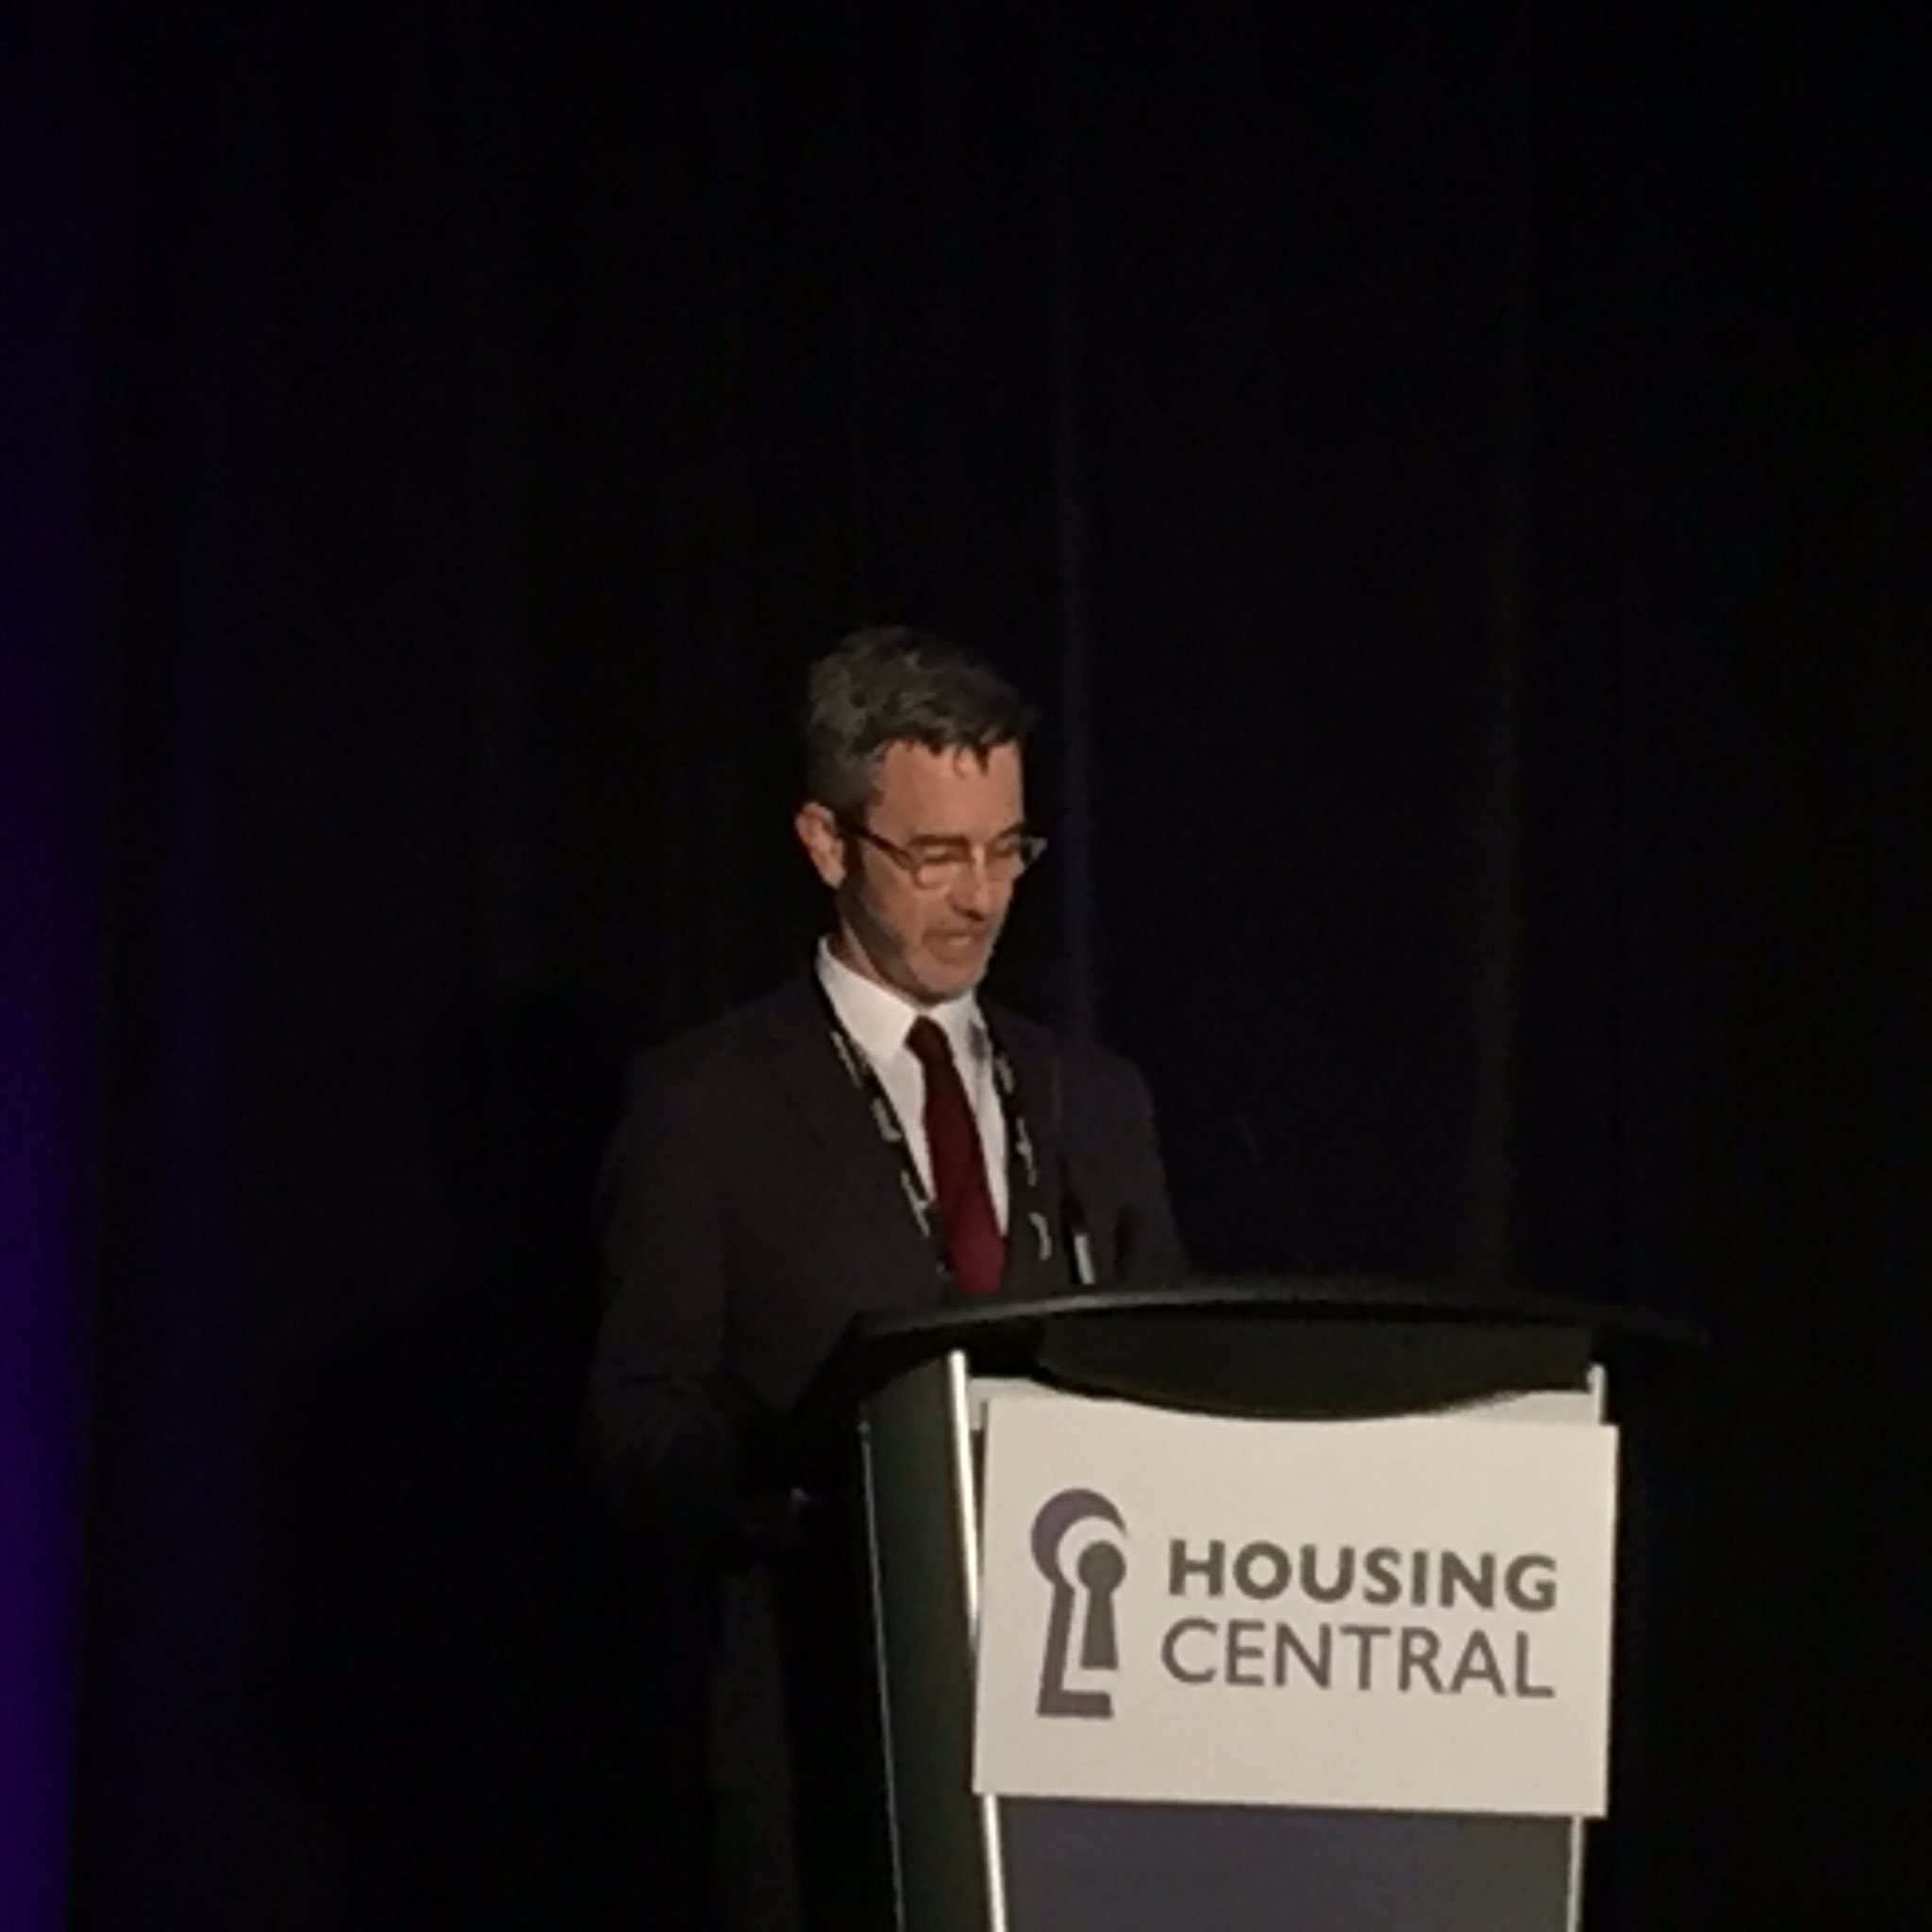 Scott Jackson @CHFCanada speaking about @RooftopsCanada at #HousingCentral https://t.co/NPaEA8Hr7e